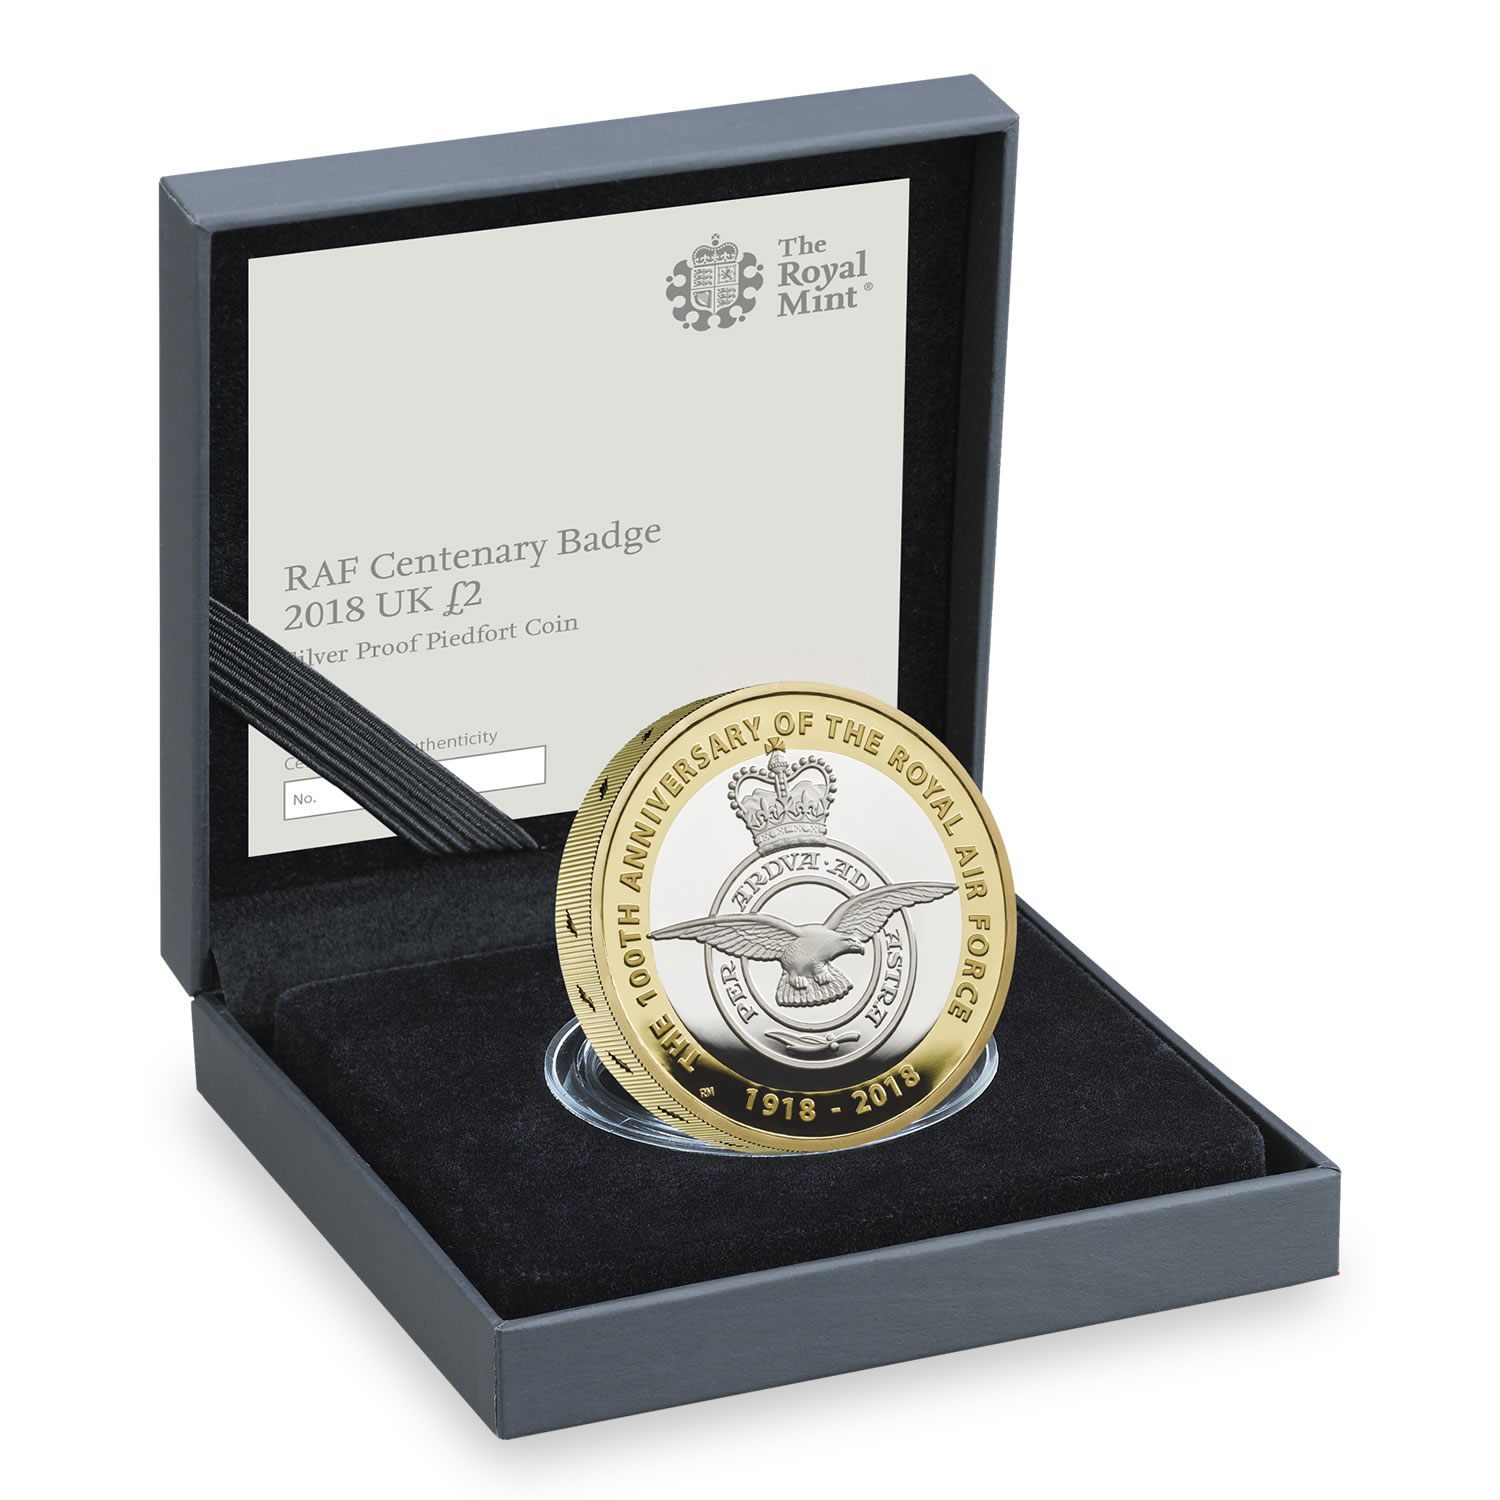 RAF Centenary Badge 2018 UK £2 Silver Proof Piedfort Coin